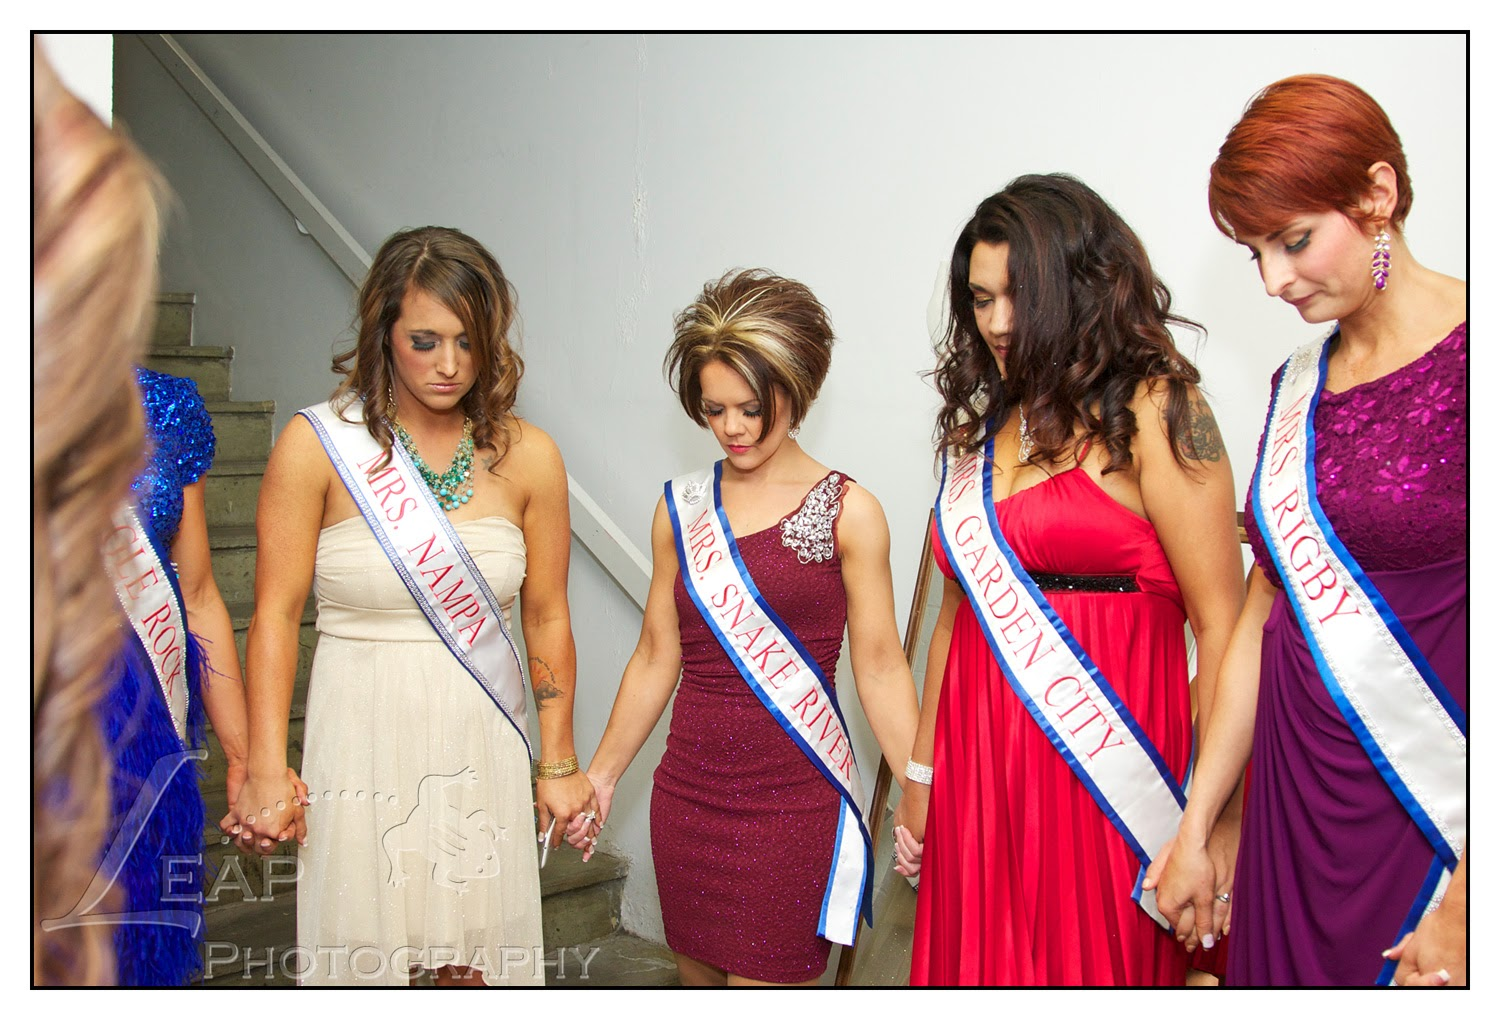 pageant ladies praying before the competition